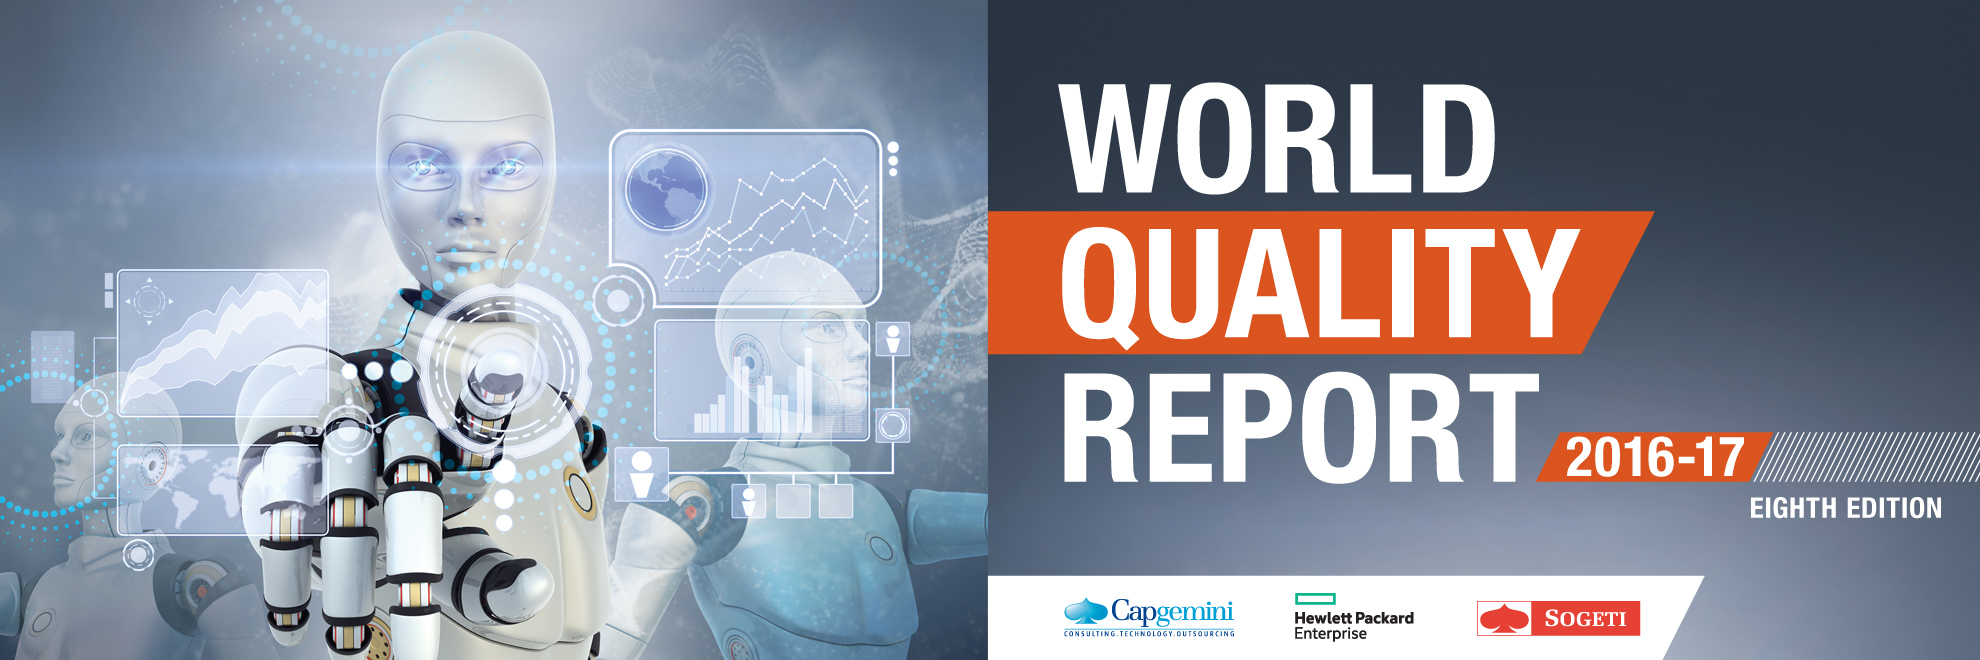 2016-16 World Quality Report